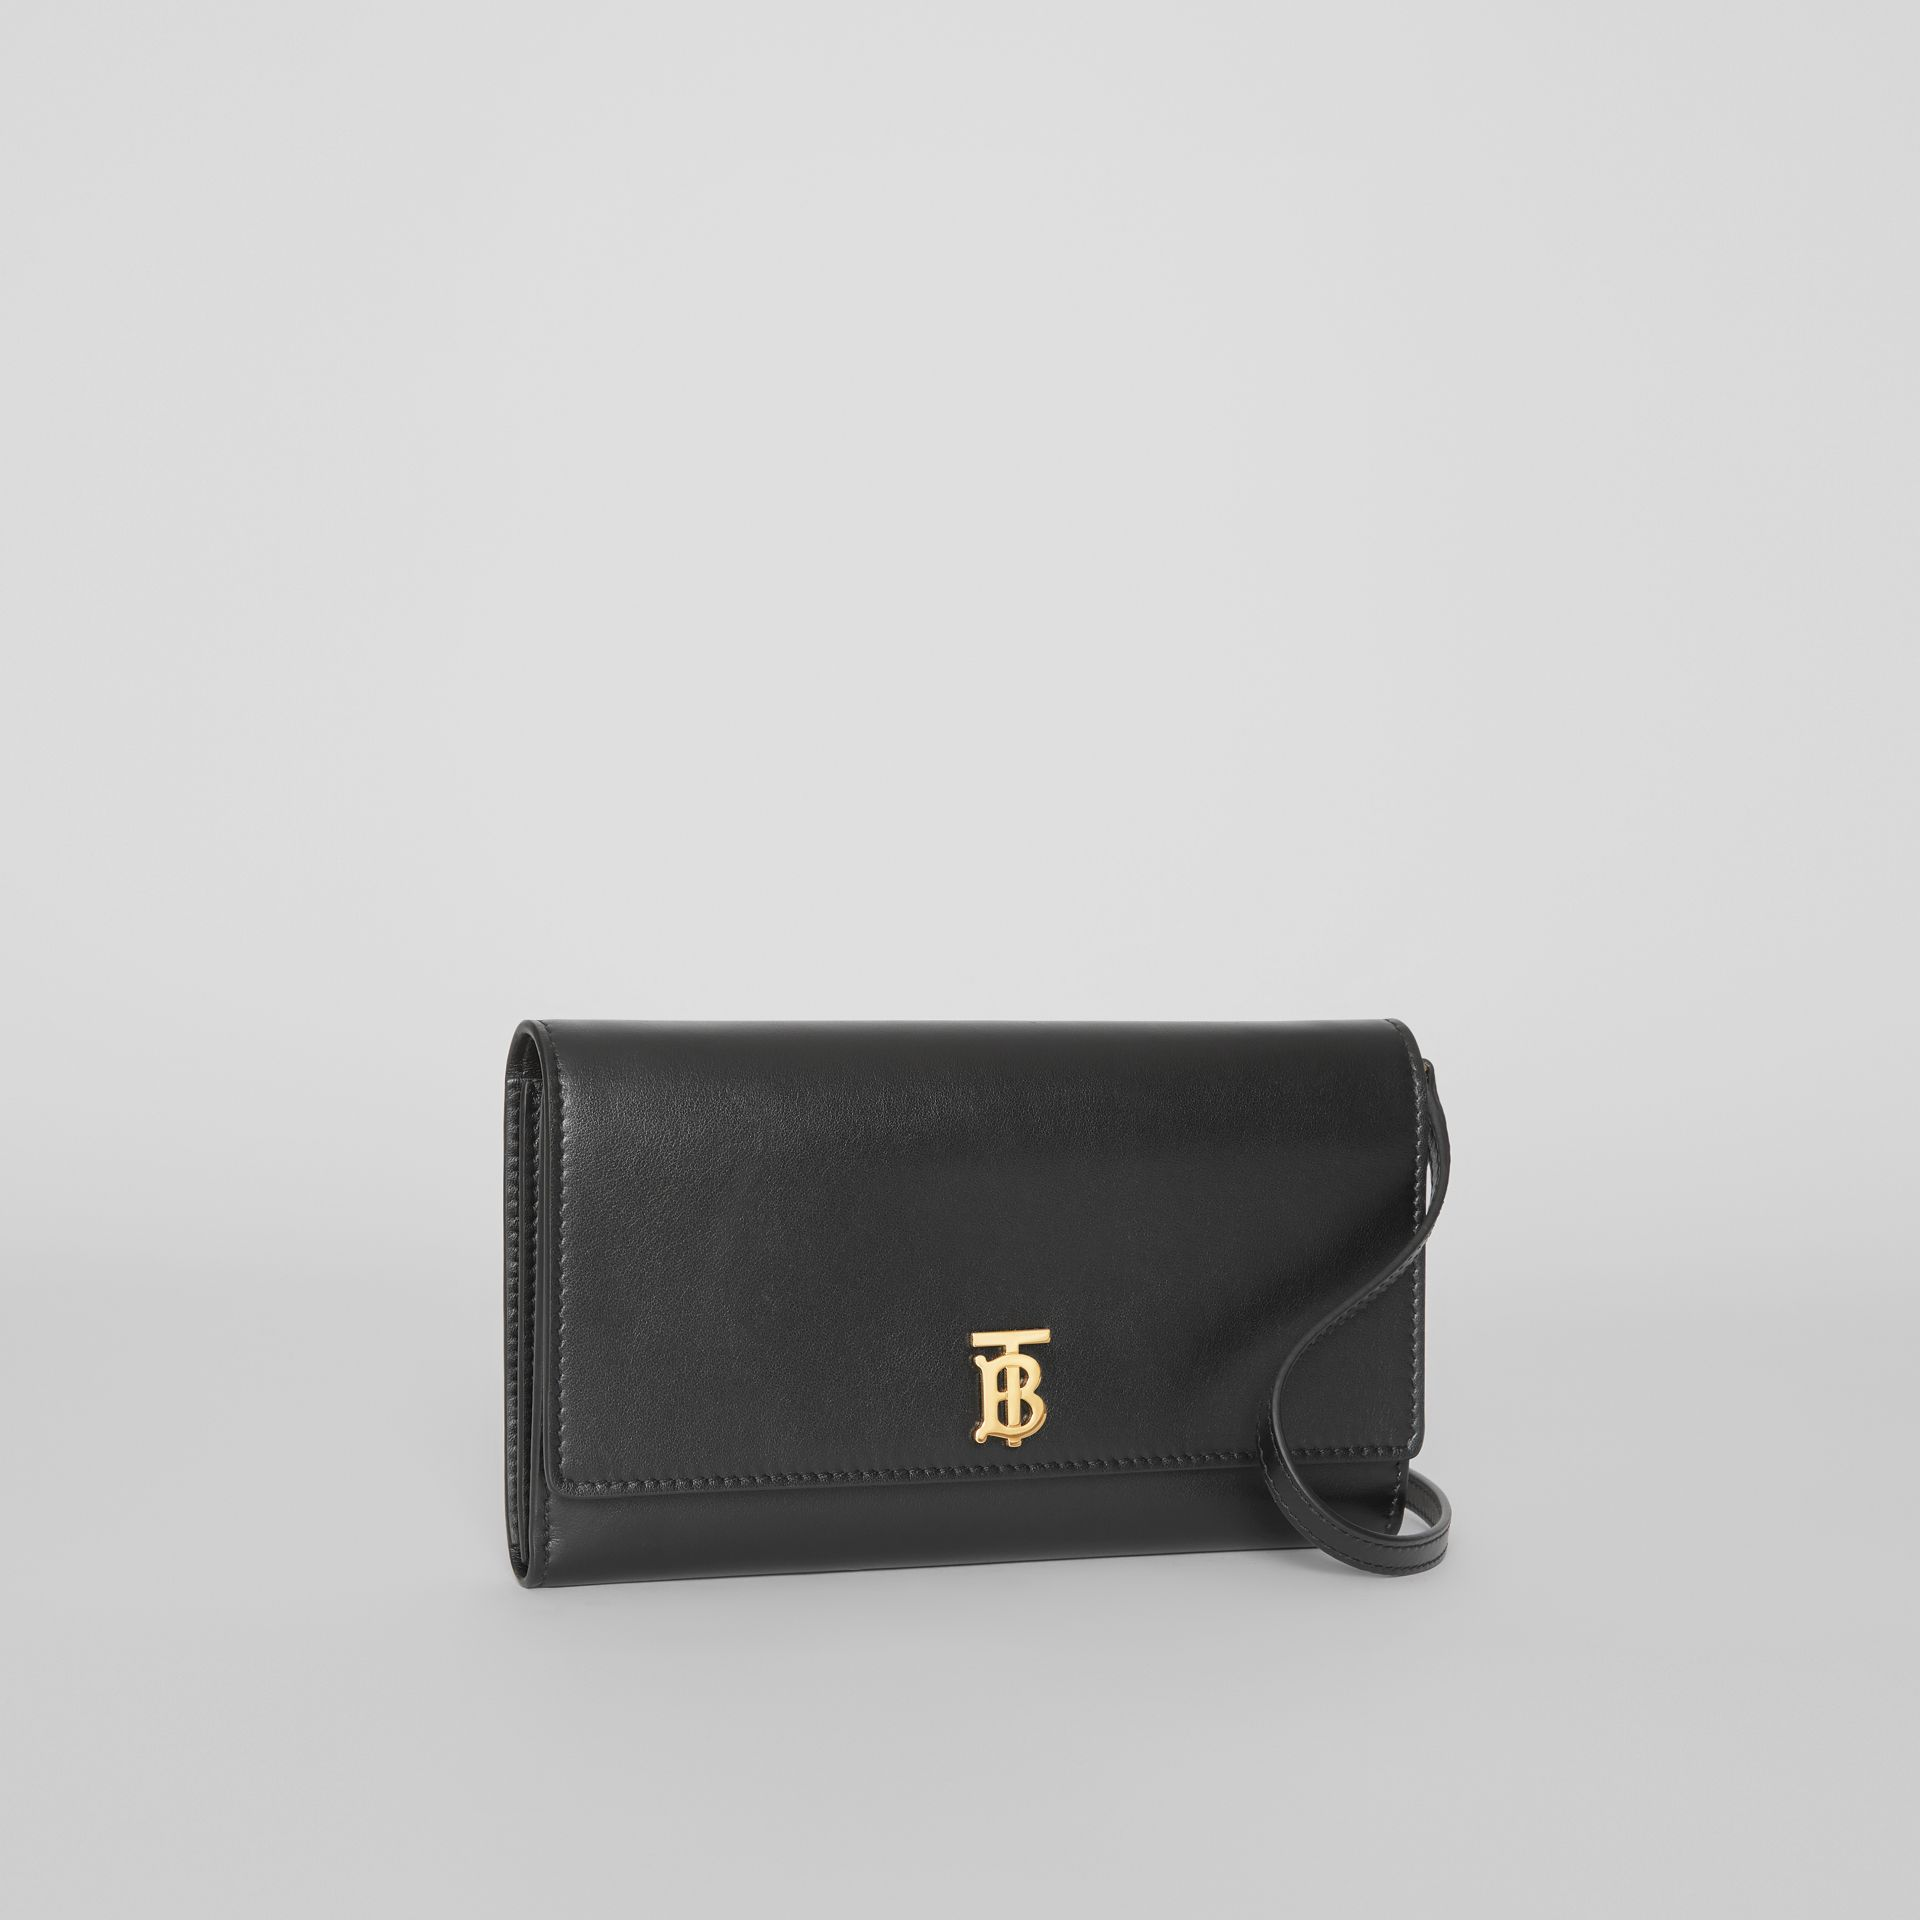 Monogram Motif Leather Wallet with Detachable Strap in Black - Women | Burberry Australia - gallery image 5